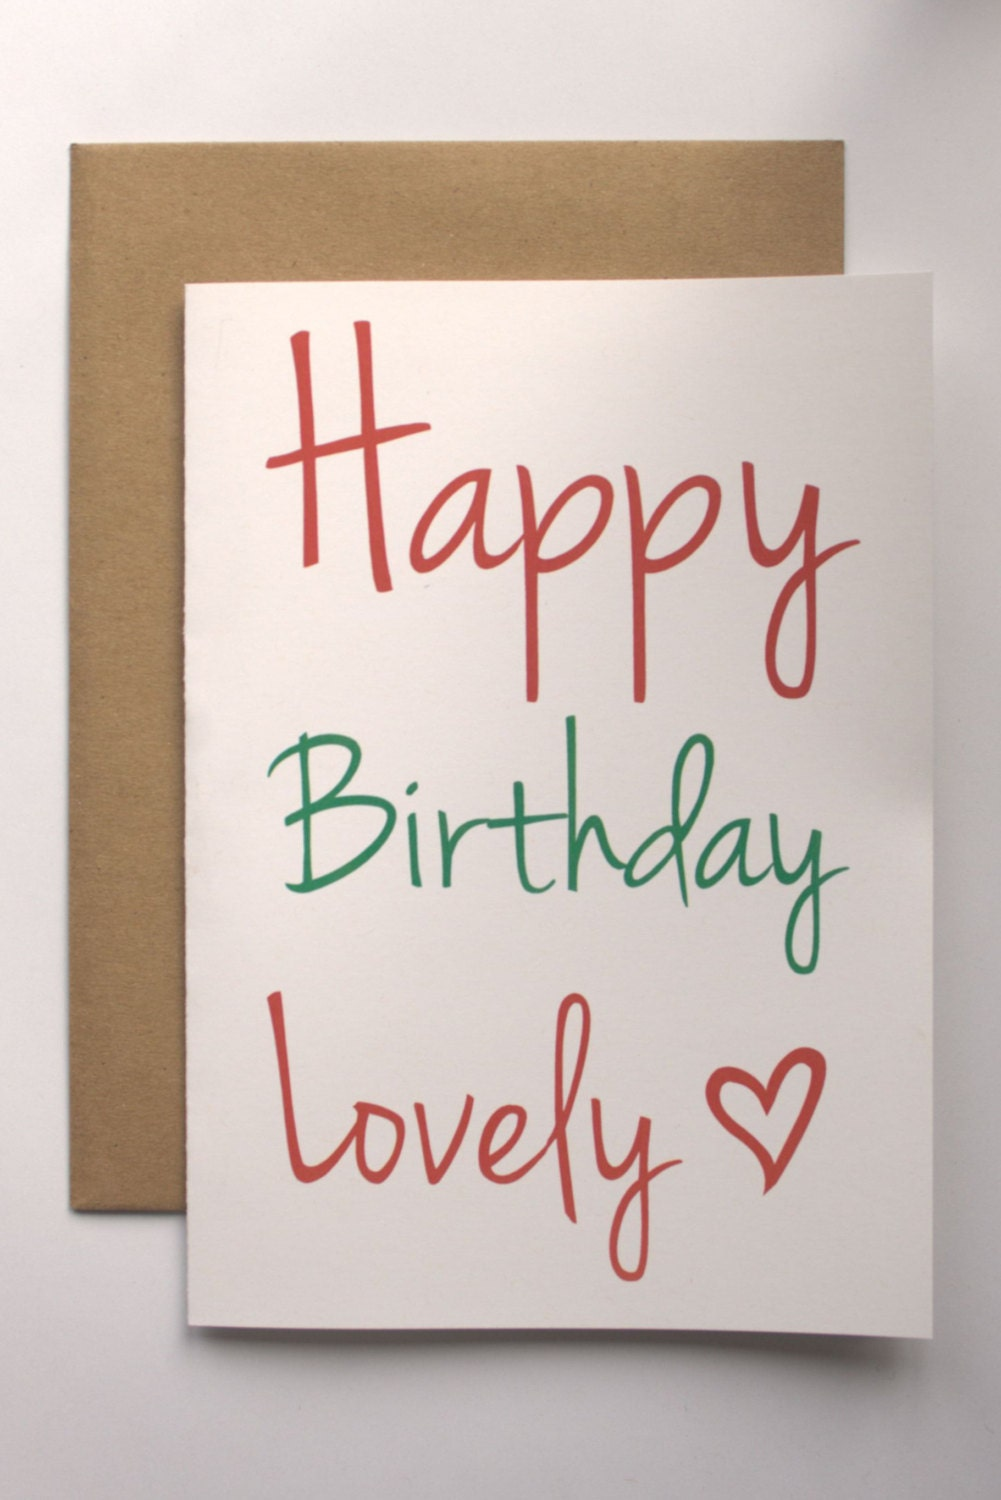 Recycled card happy birthday lovely eco friendly greeting card recycled card happy birthday lovely eco friendly greeting card recycled paper brown kraft envelope red hot pink green script blank inside kristyandbryce Images